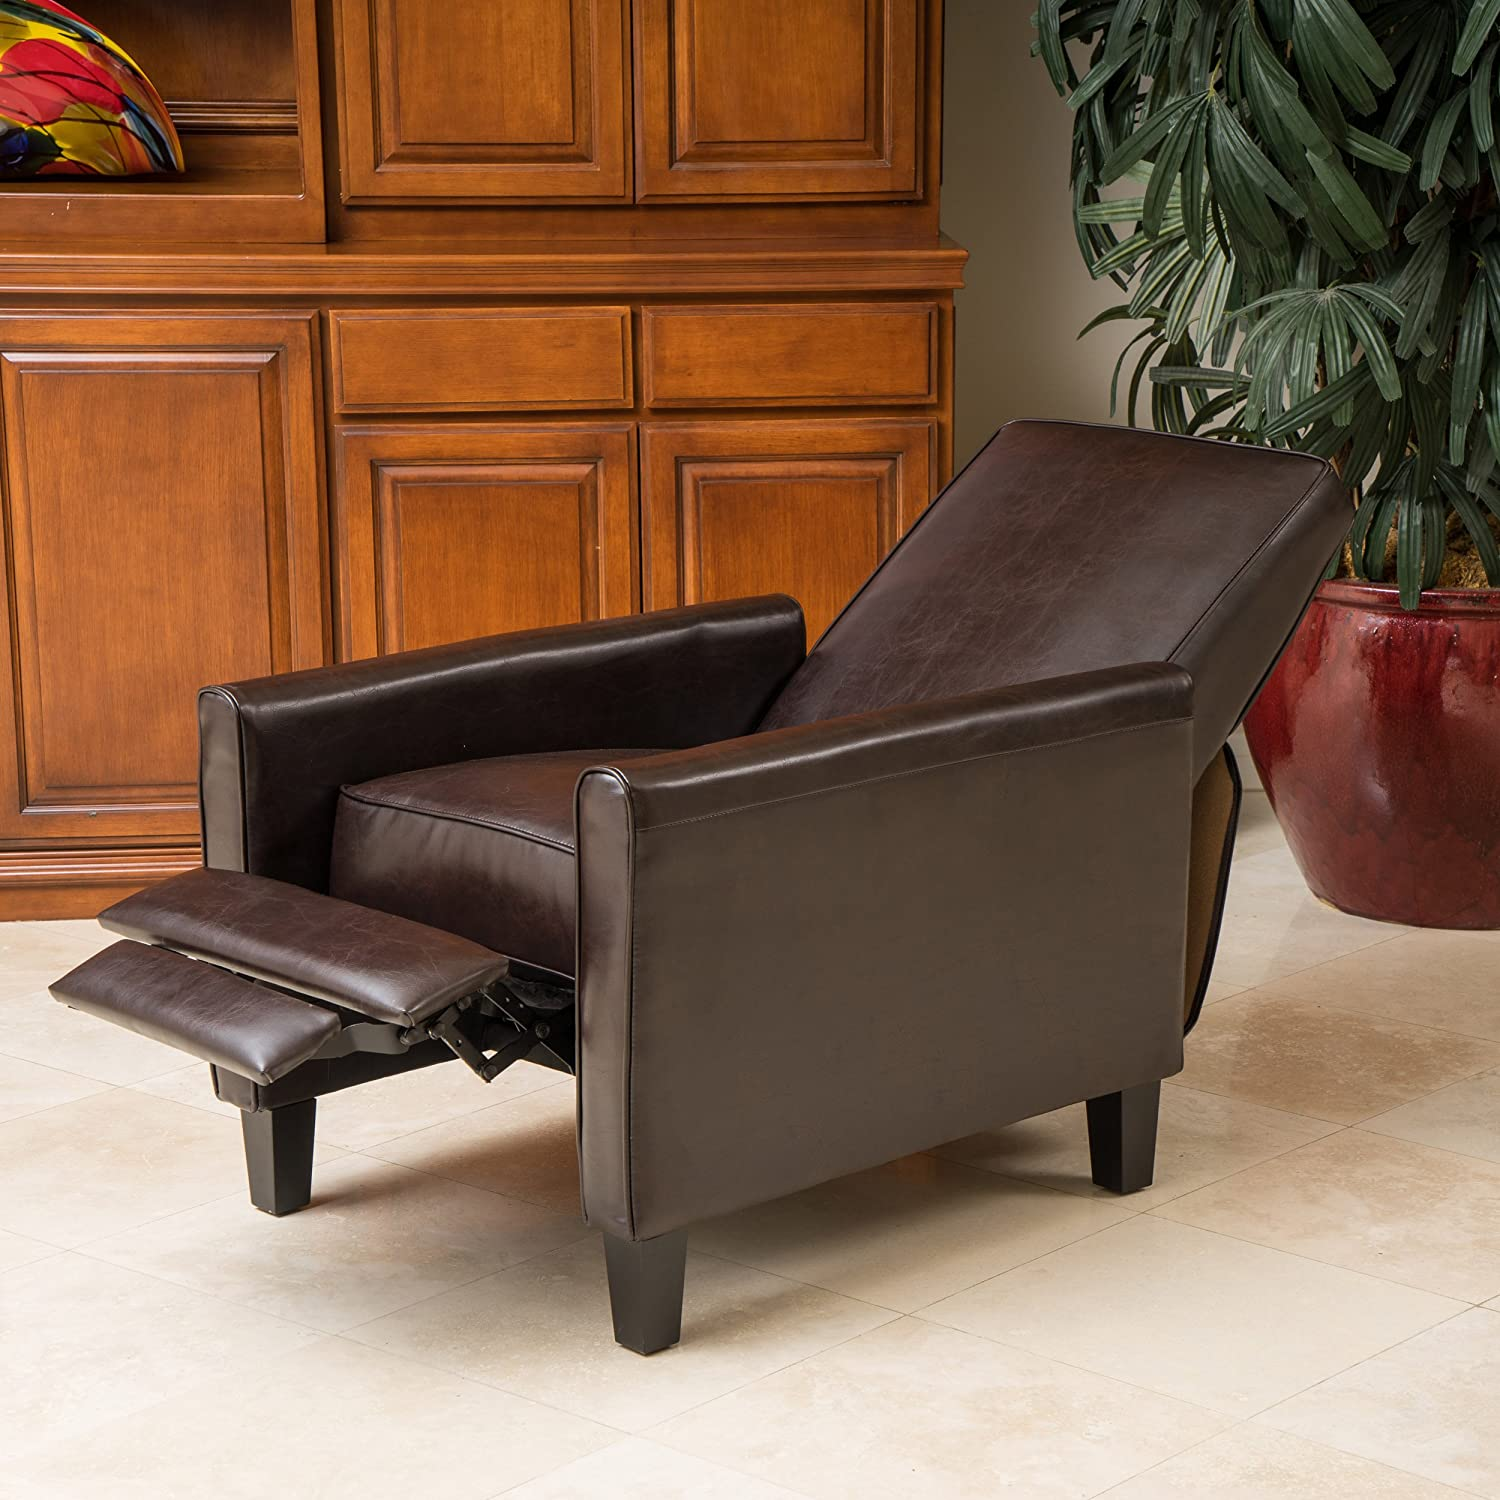 Amazon.com Lucas Brown Leather Modern Sleek Recliner Club Chair Kitchen u0026 Dining & Amazon.com: Lucas Brown Leather Modern Sleek Recliner Club Chair ... islam-shia.org